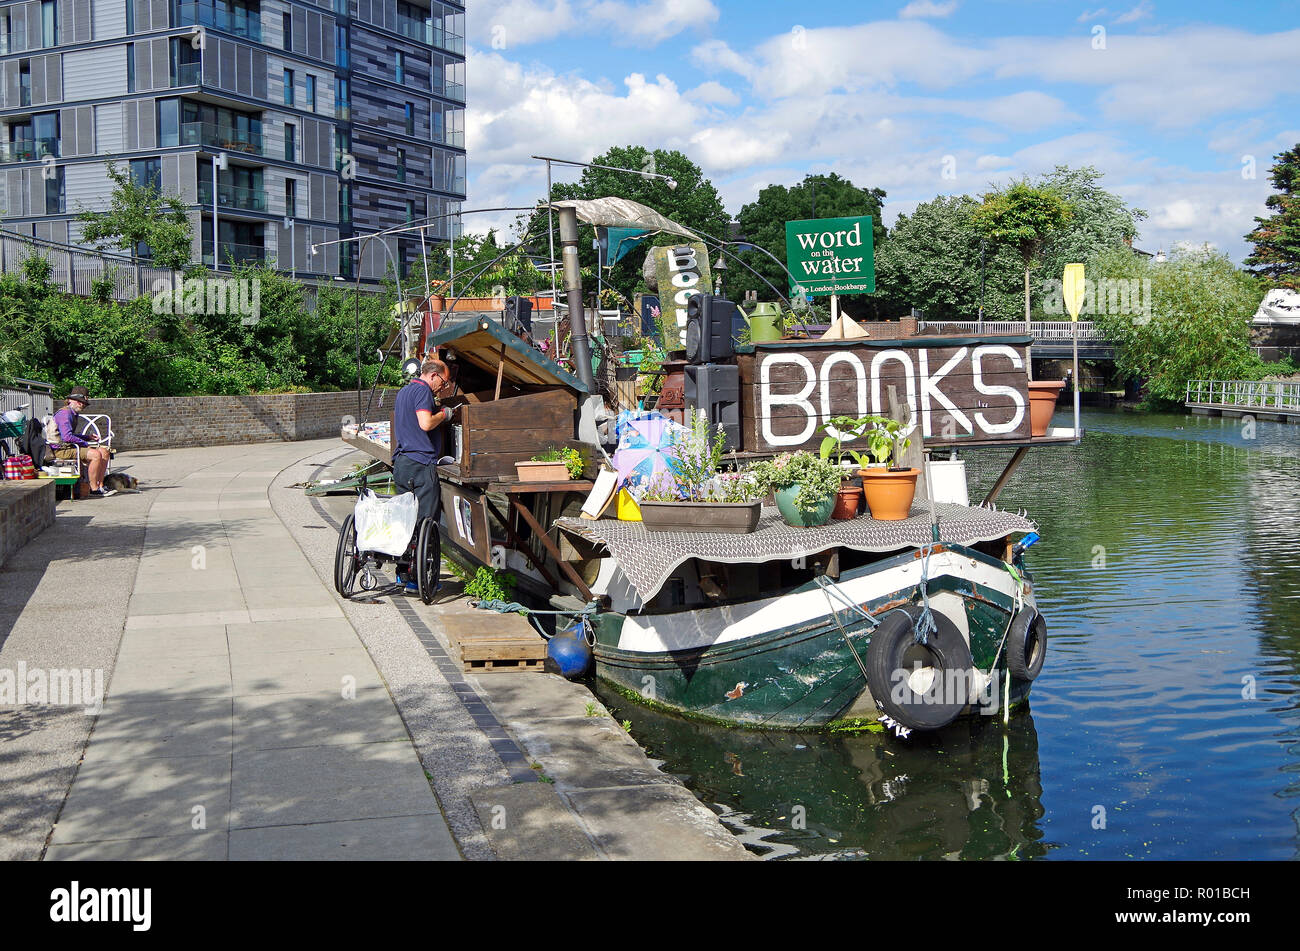 Dutch Barge Stock Photos & Dutch Barge Stock Images - Alamy